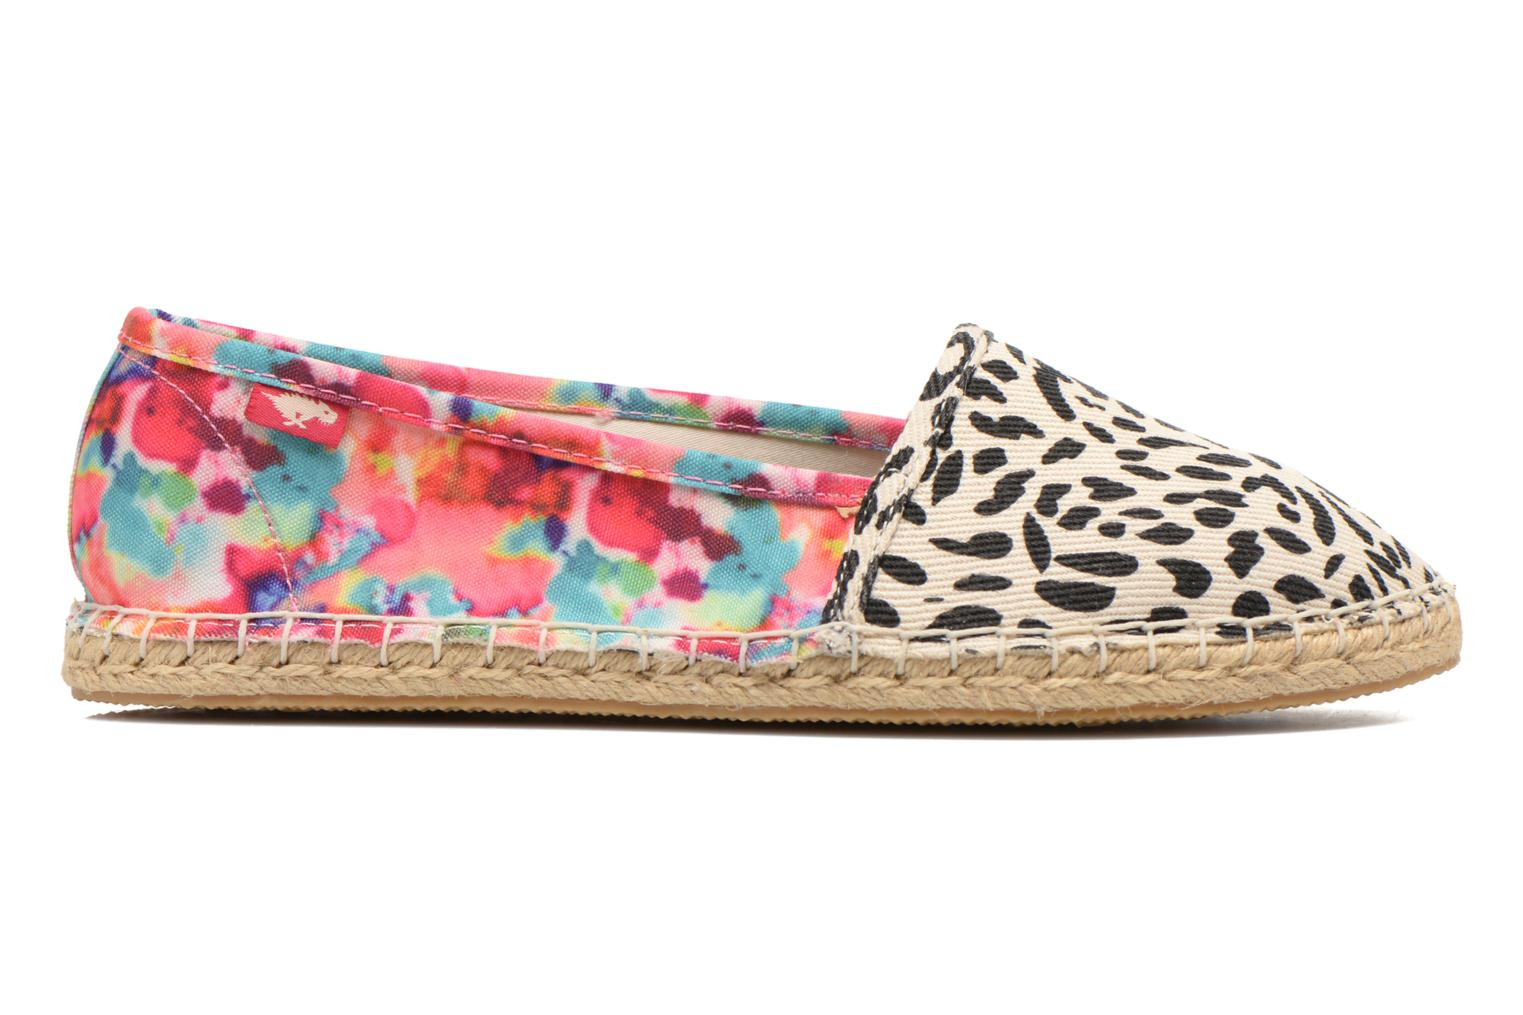 Temple Hot Trot/Wilde One Naturel Pink/Multi